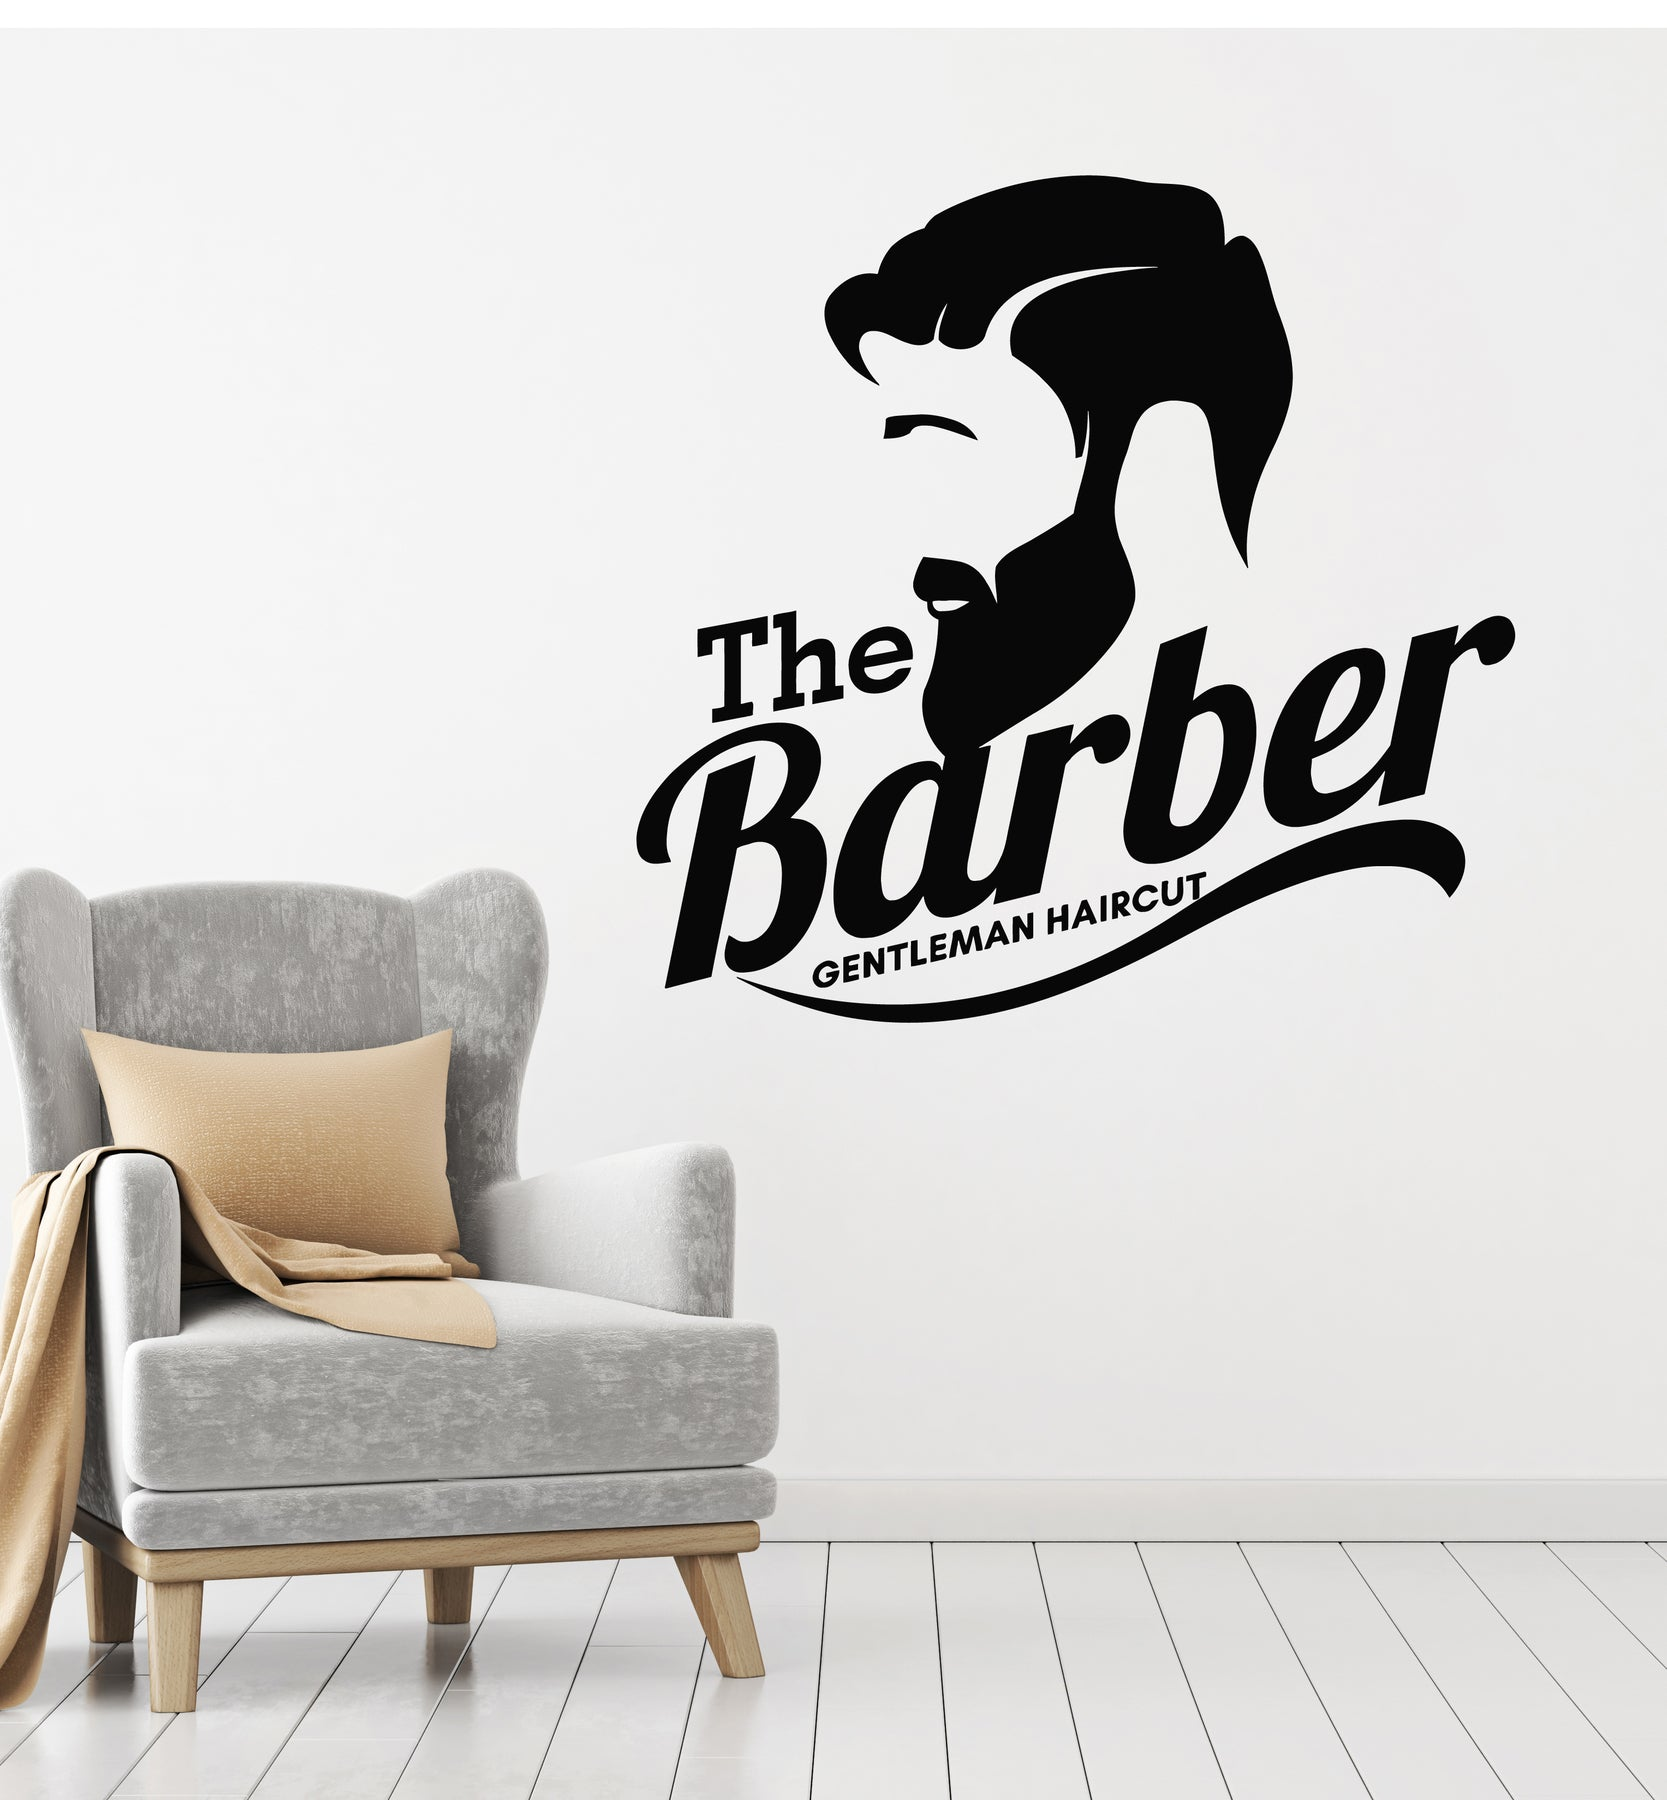 Vinyl Wall Decal Barber Shop Barbershop Gentlemen Haircut Salon Sticke Wallstickers4you